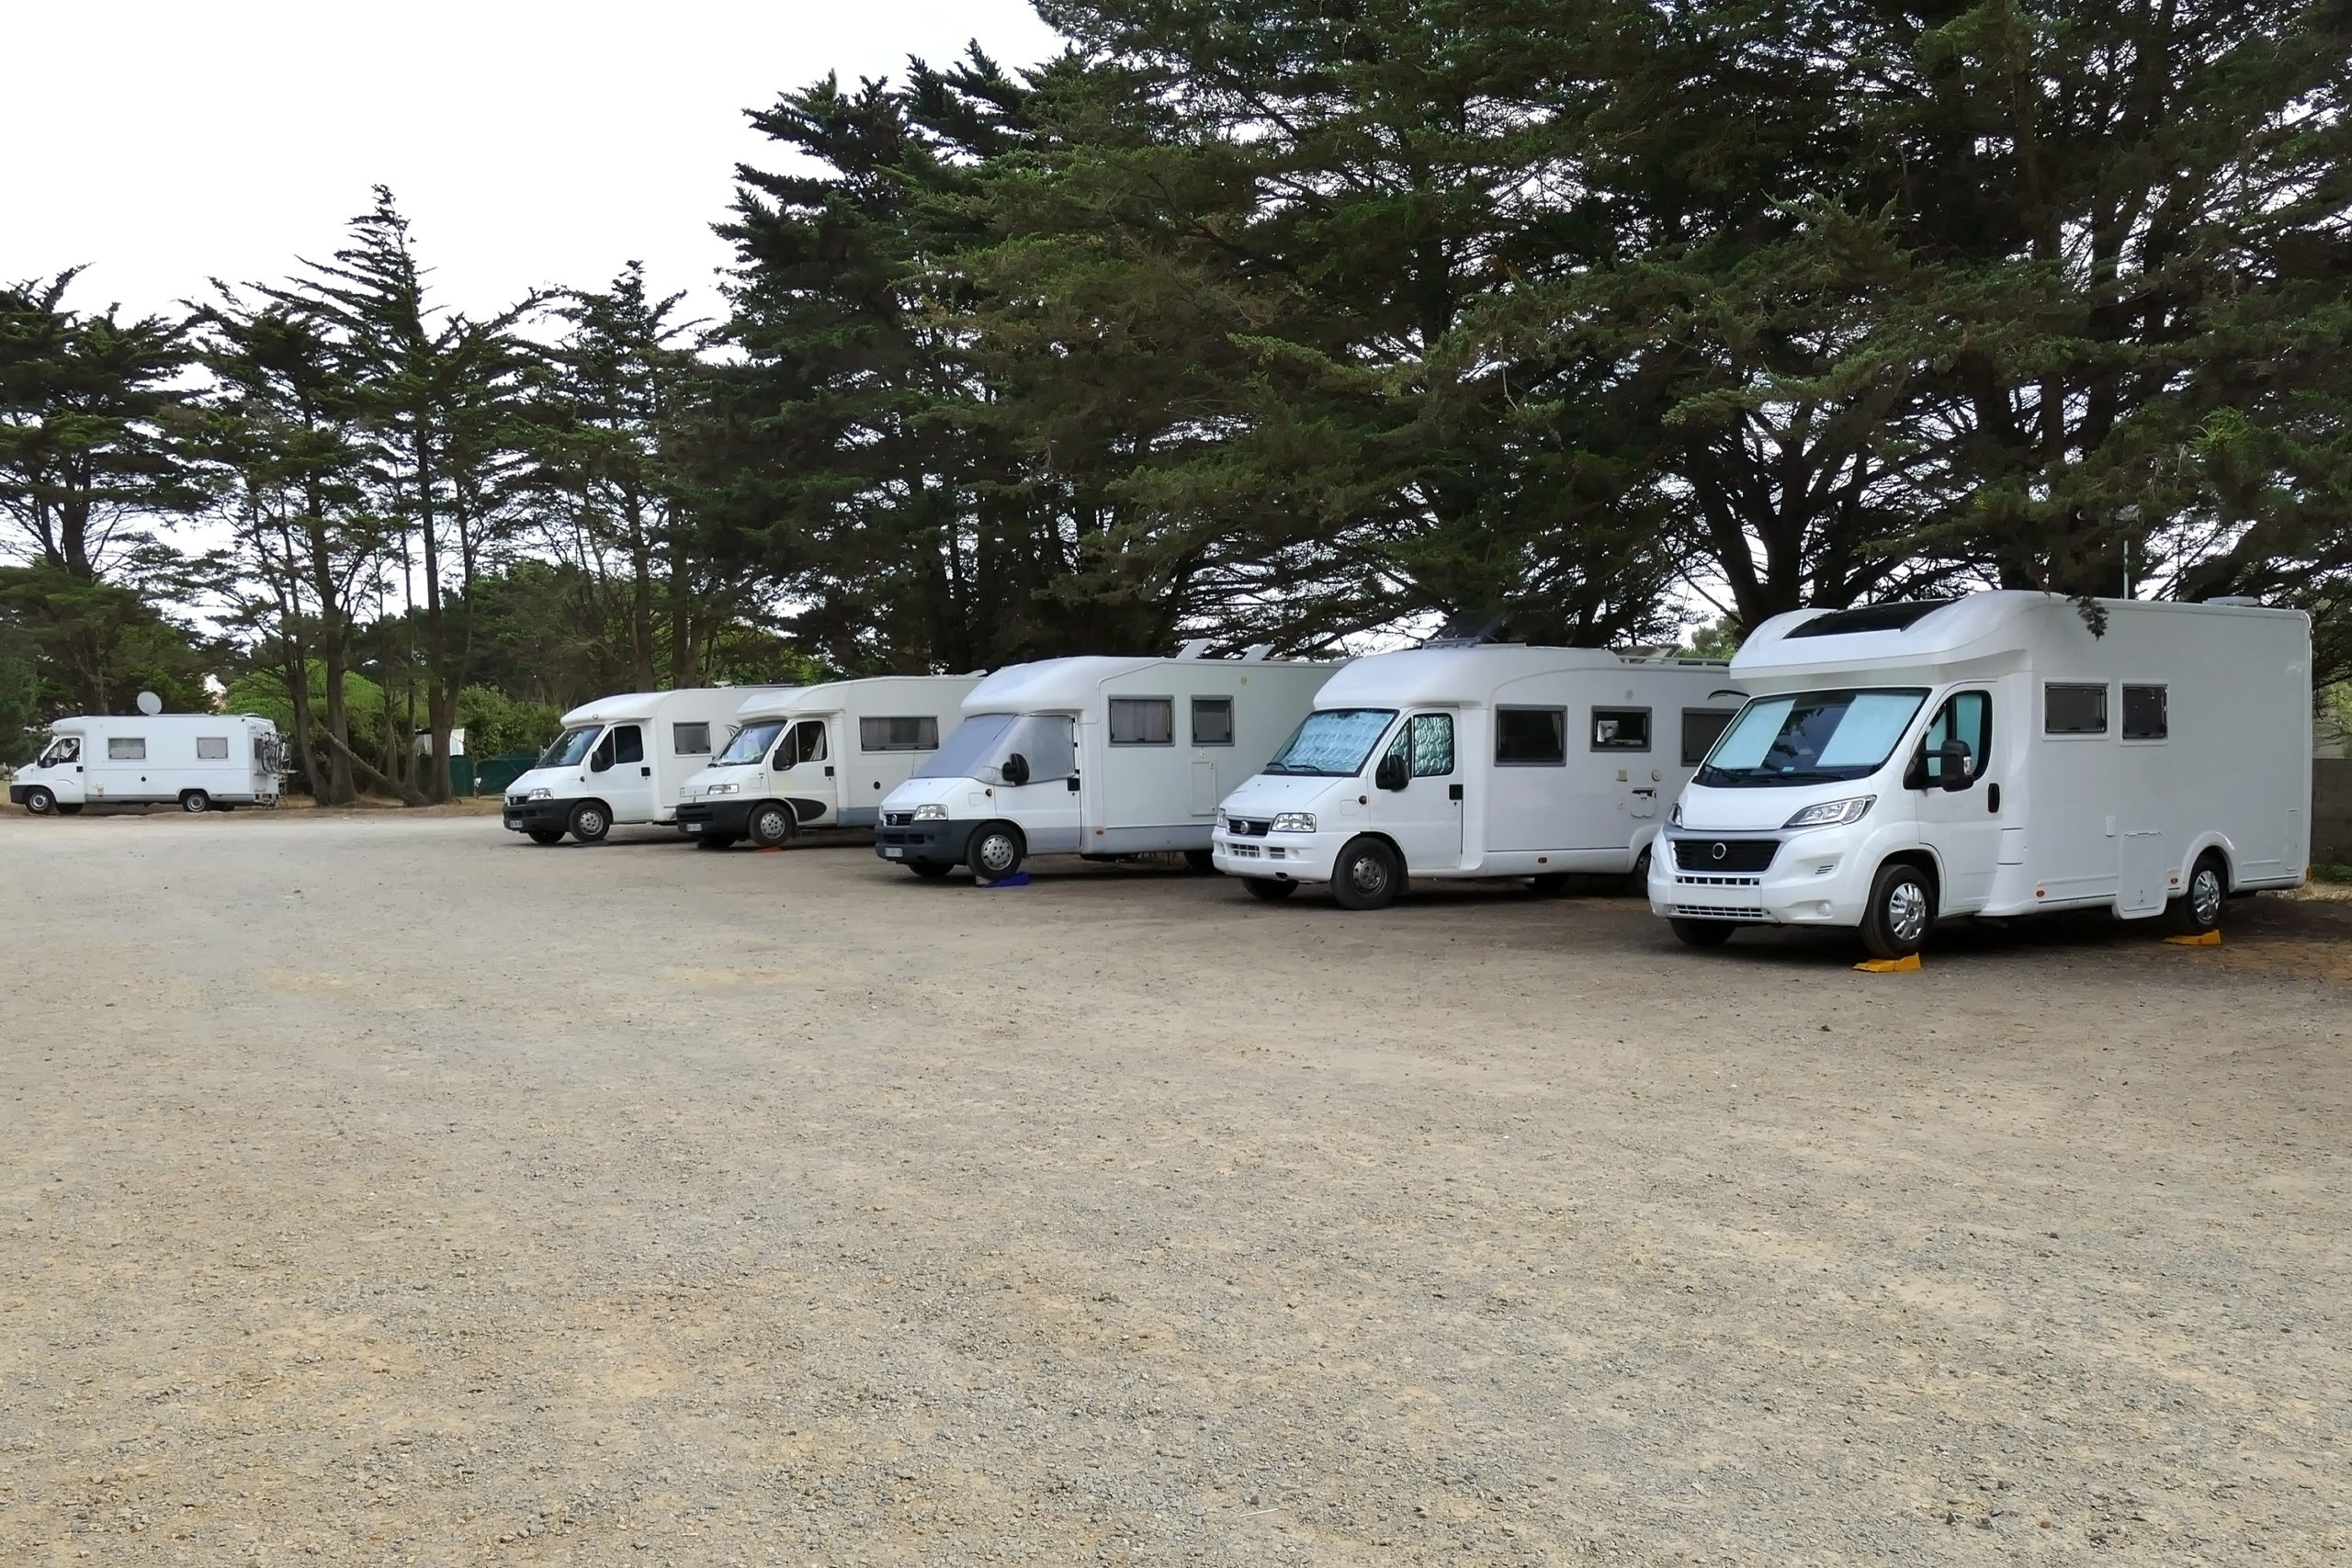 Freedom camping with camper motor homes parked on leveling blocks